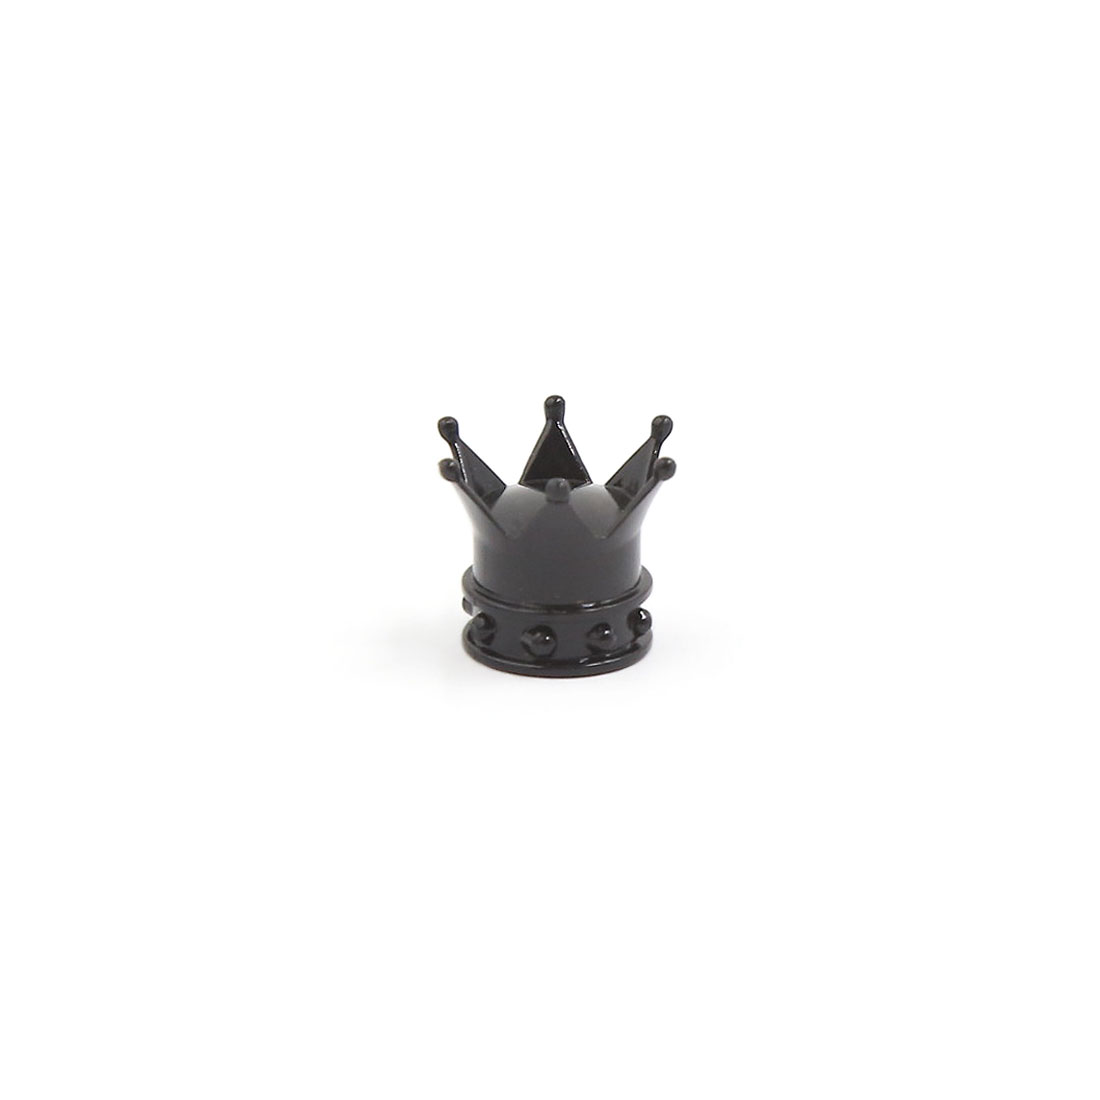 Black Plastic Crown Shape Car Bike Motorcycle Truck Wheel Tire Valve Stem Cap